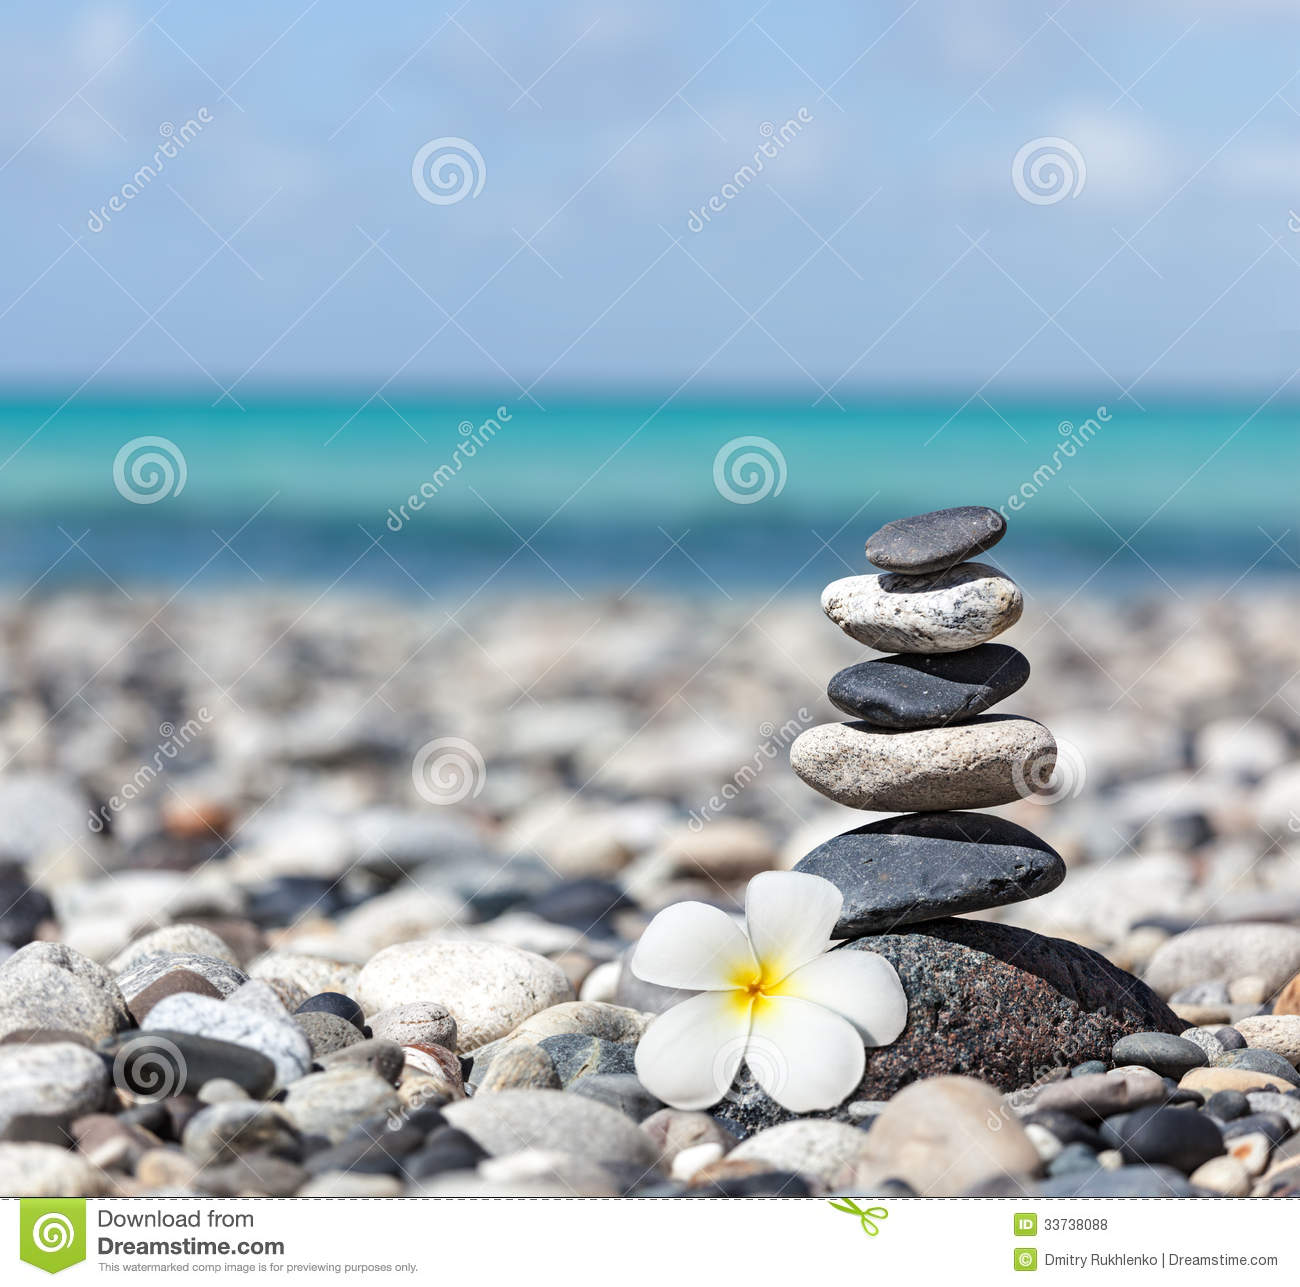 zen balanced stones stack with plumeria flower royalty free stock photos image 33738088. Black Bedroom Furniture Sets. Home Design Ideas